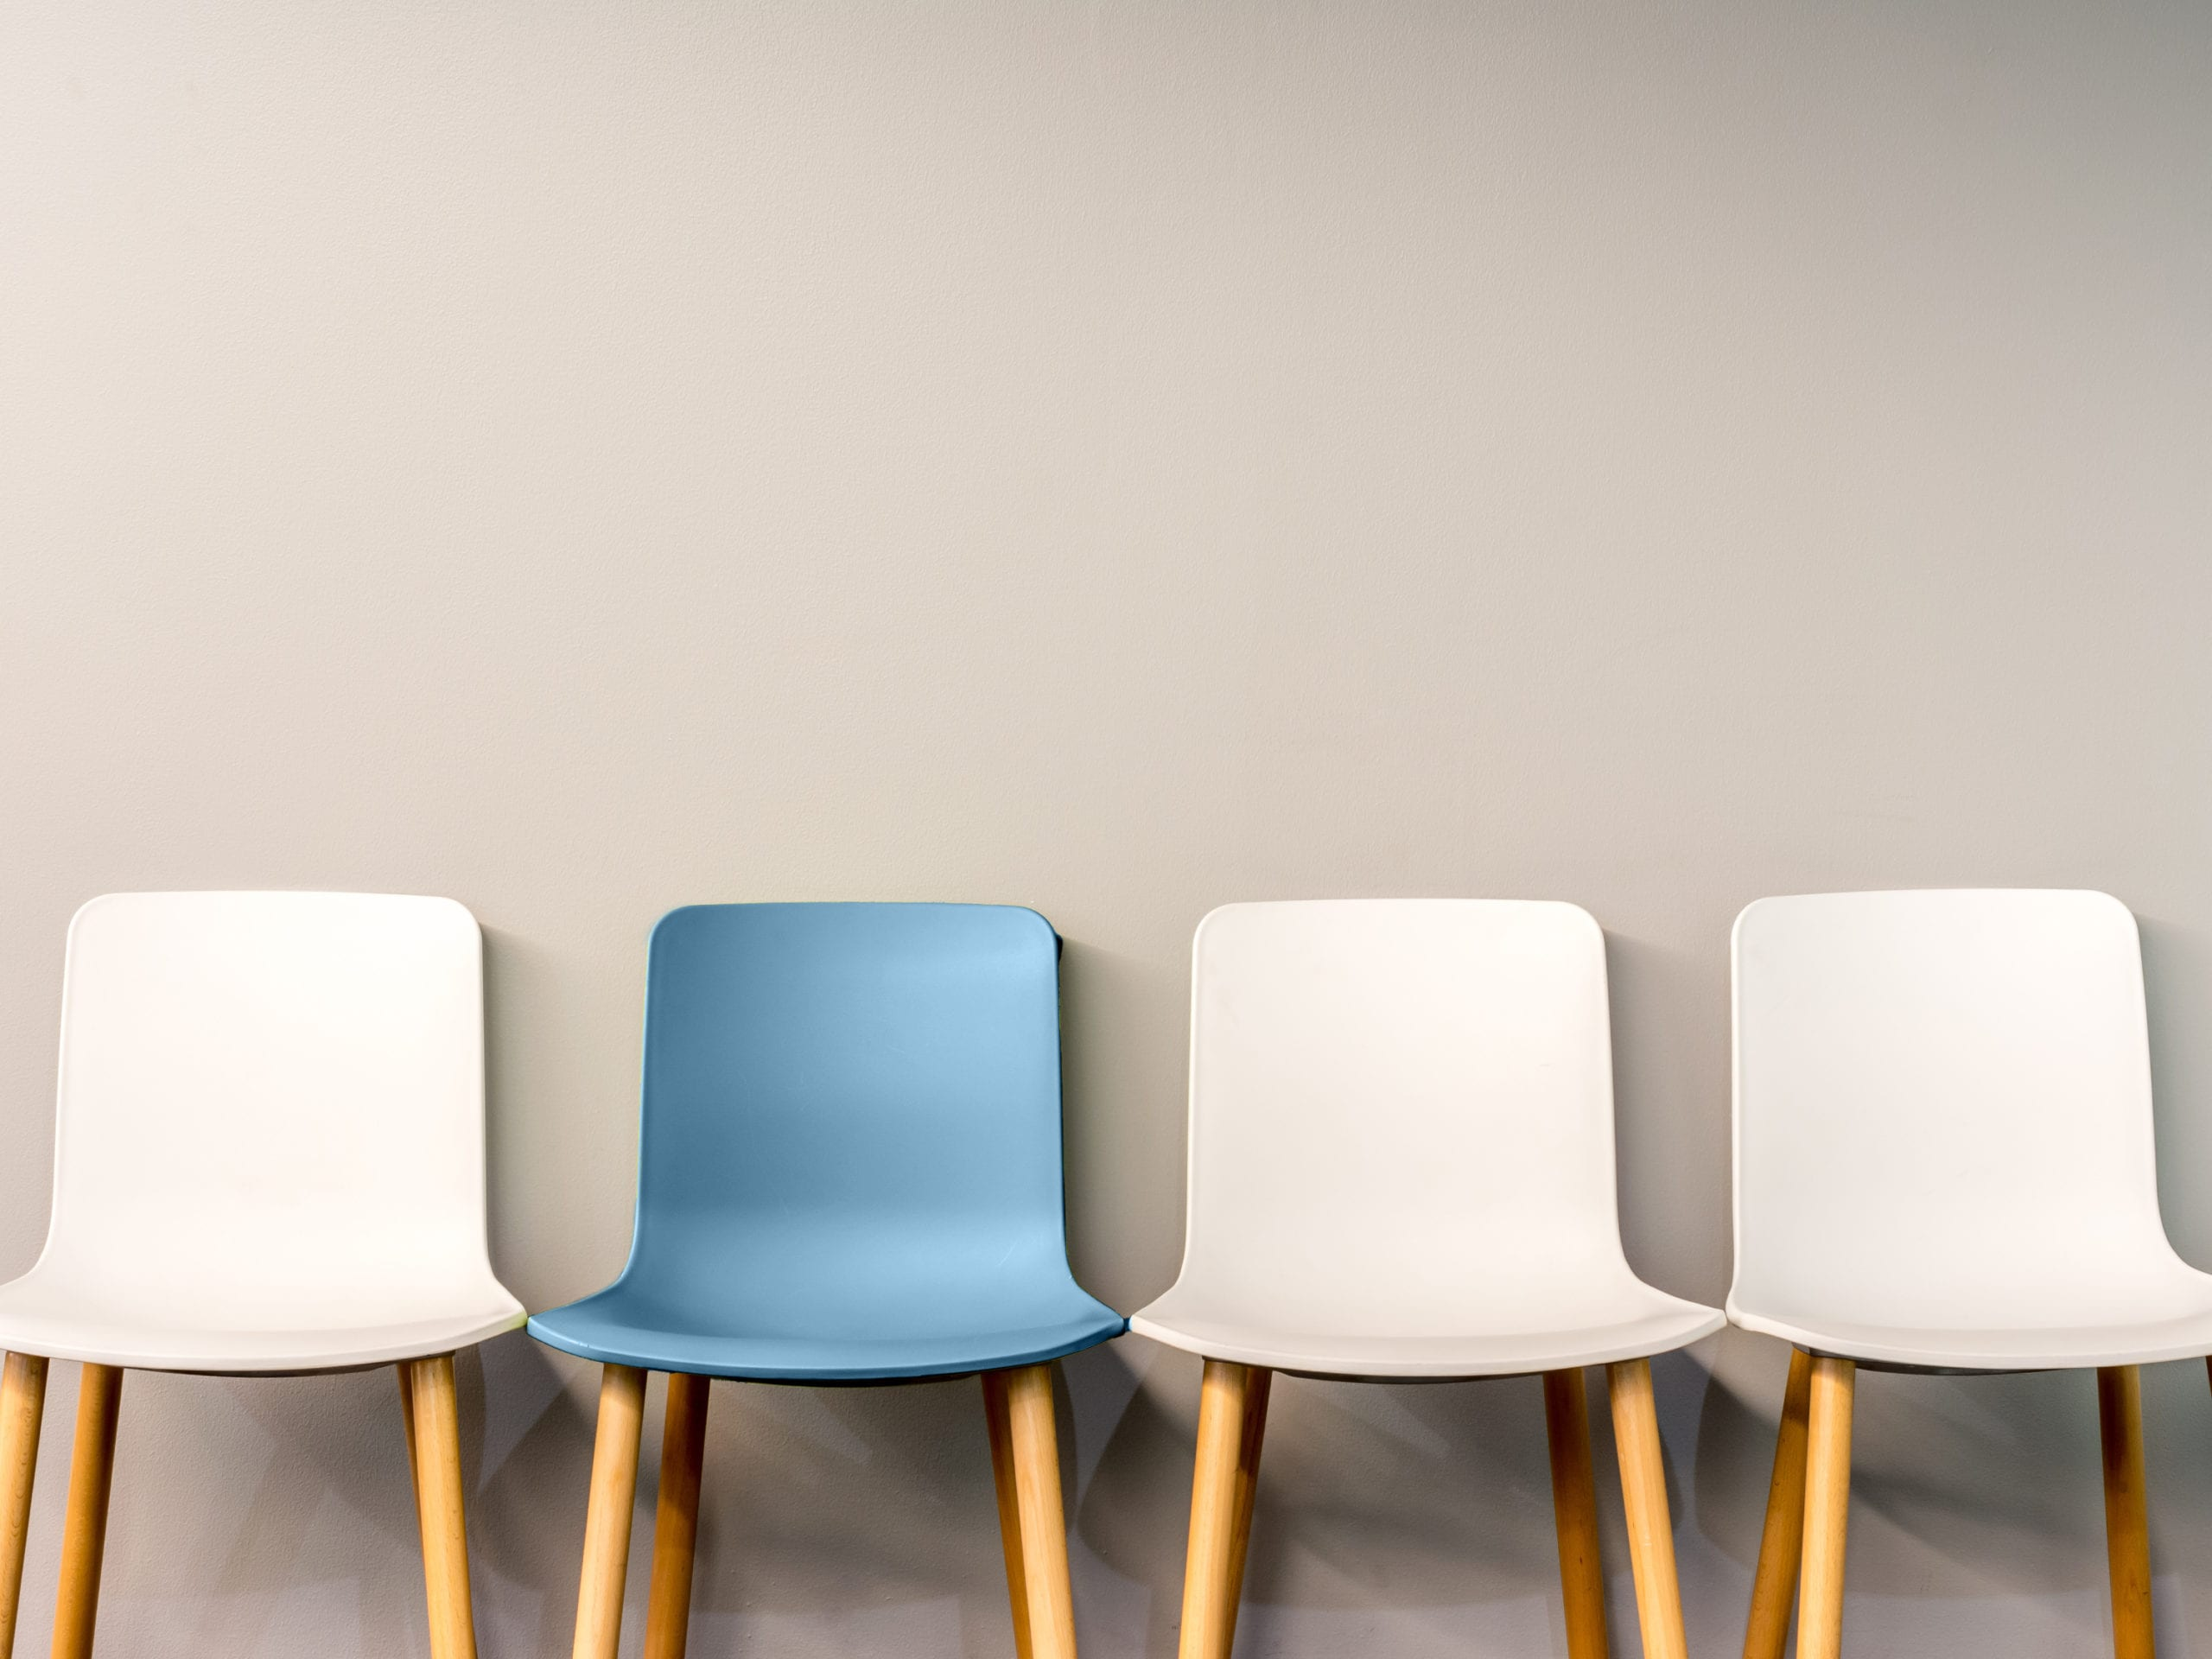 Office chairs. Find out about career opportunities for attorneys, paralegals, legal assistants and more at Rasmussen Dickey Moore's offices in Kansas City, St. Louis, and Los Angeles.